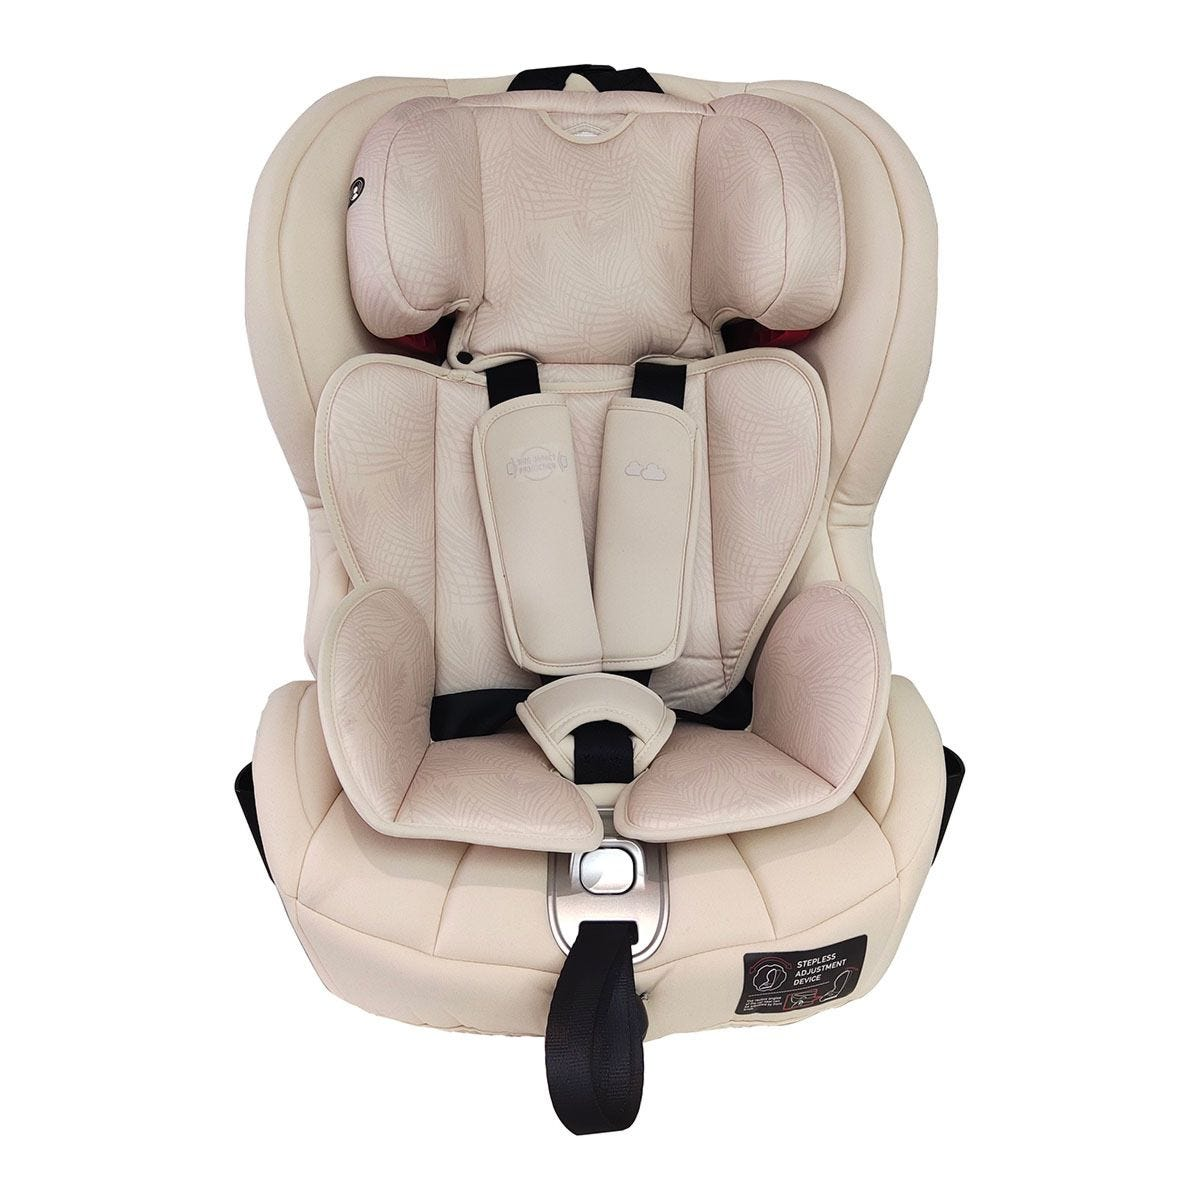 My Babiie Dreamiie Group 123 Car Seat - Blush Tropical